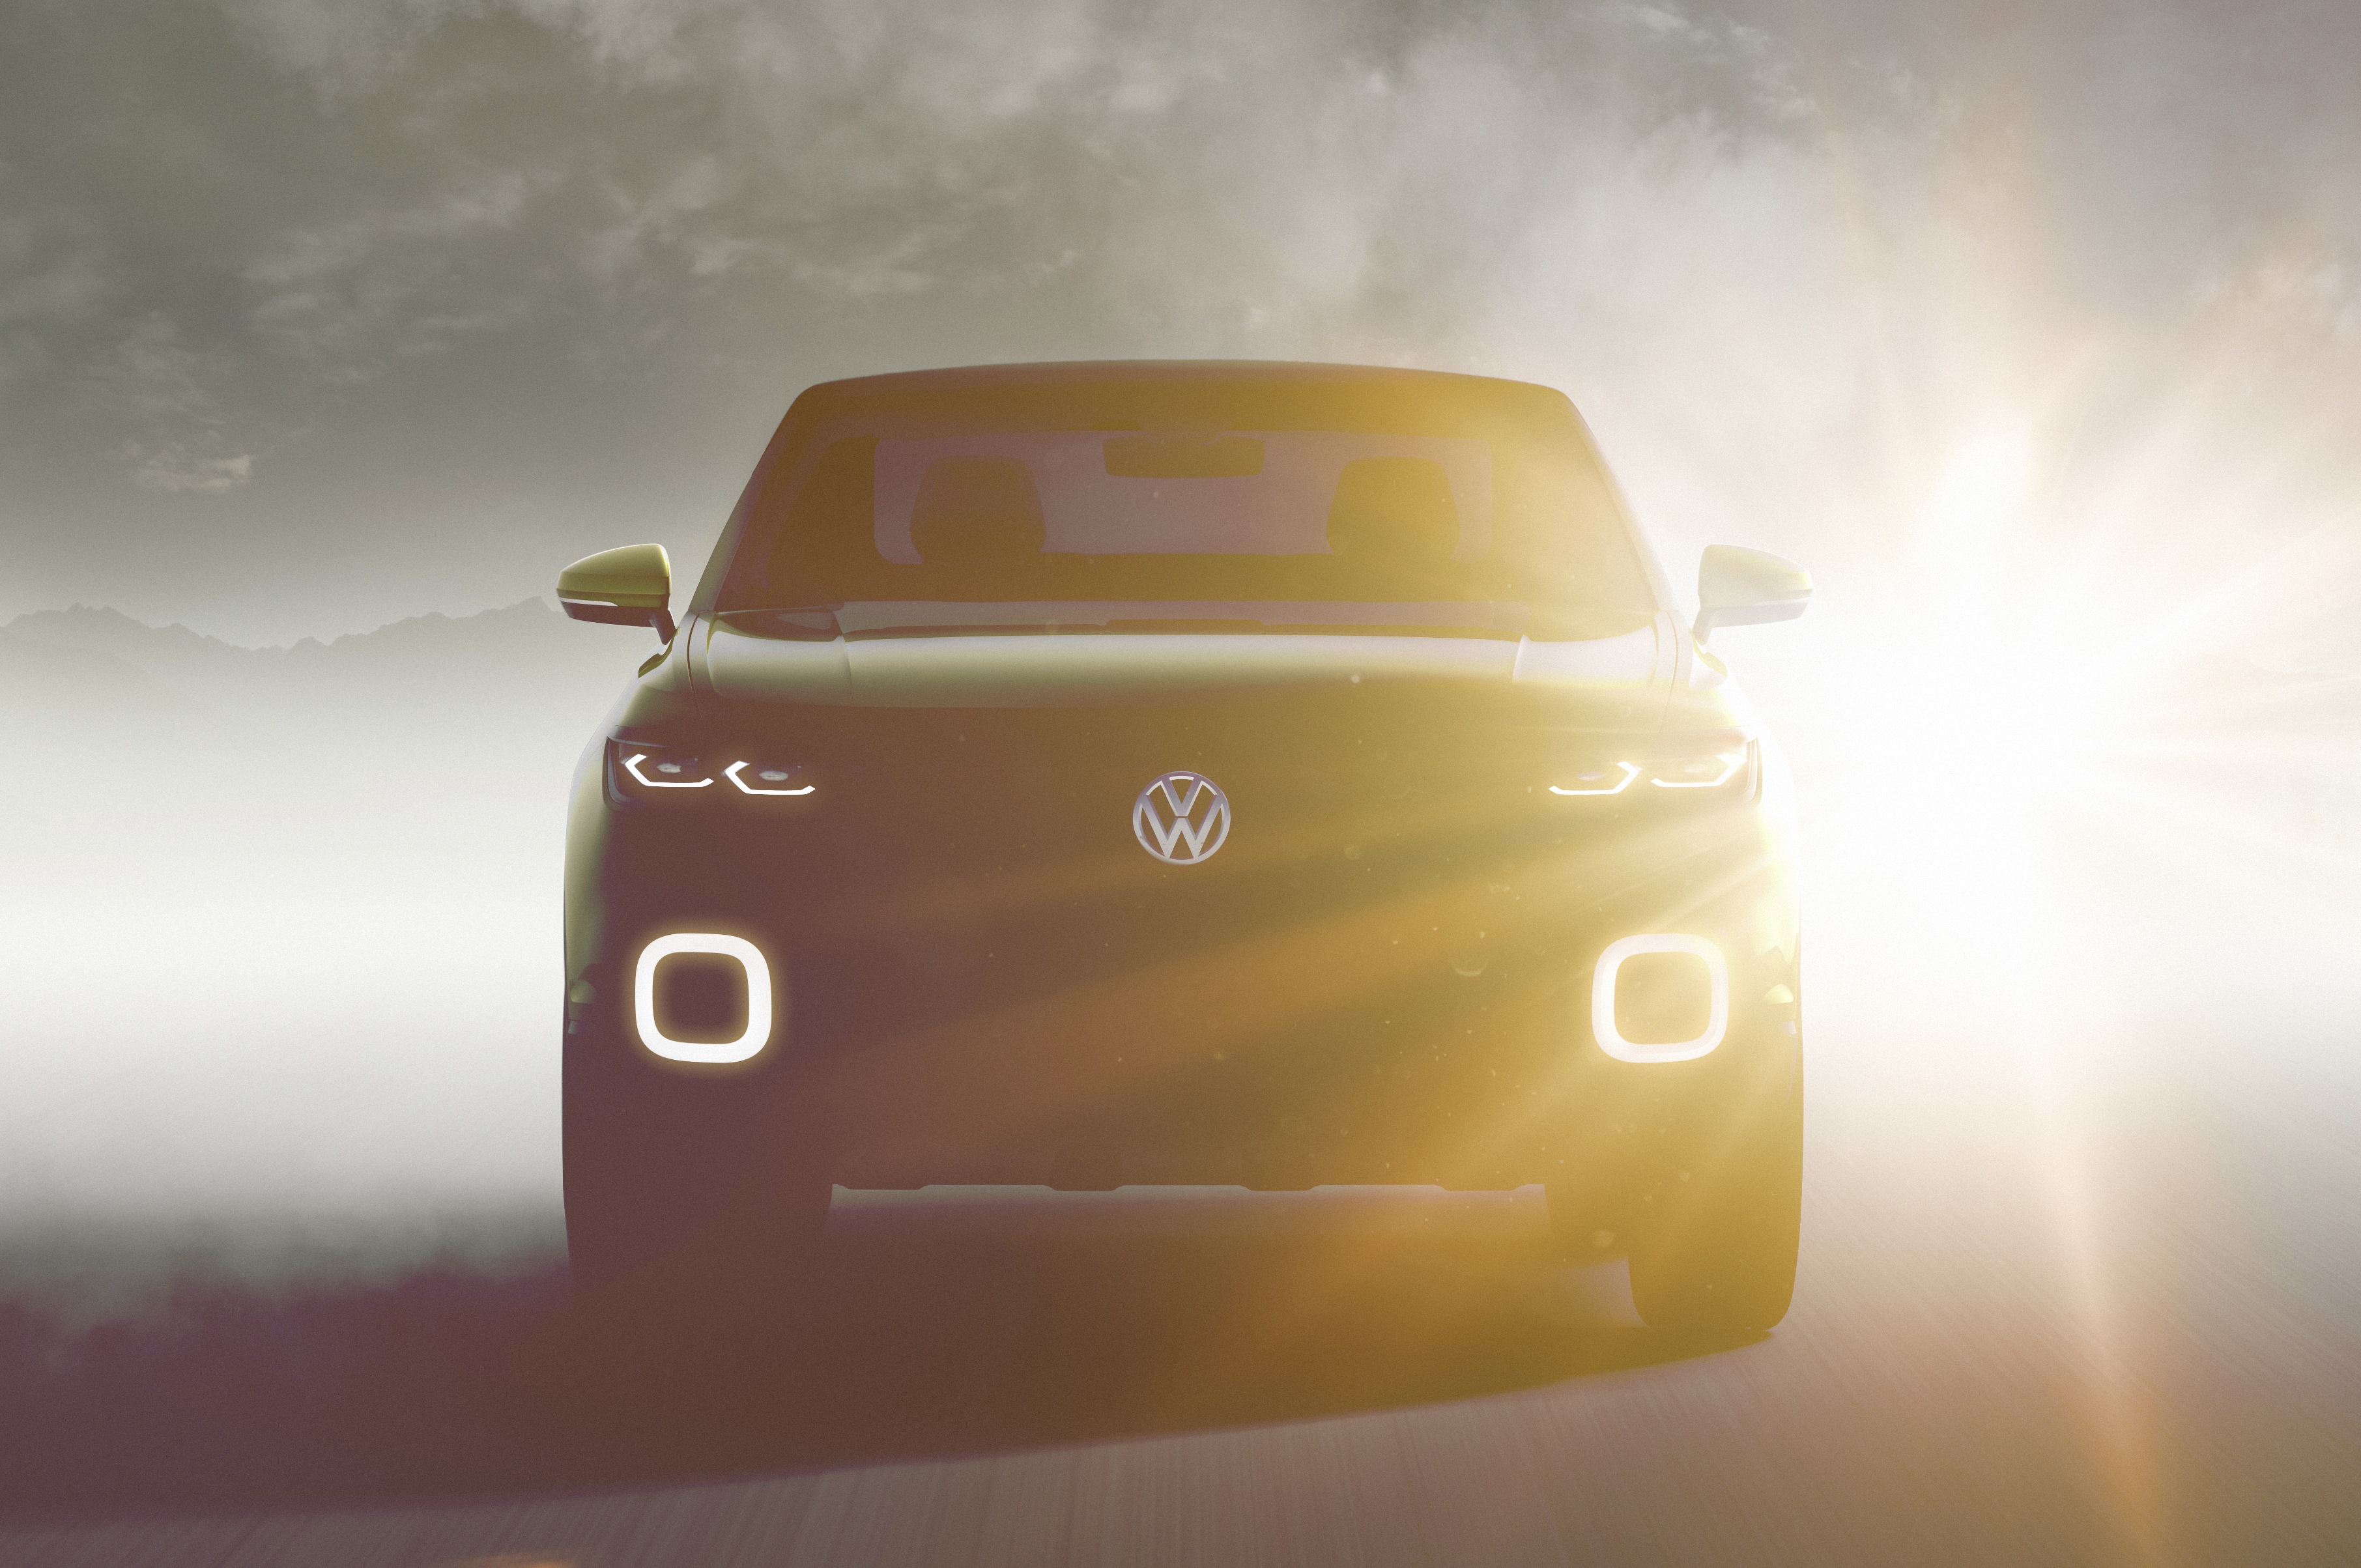 geneva bound opel gt concept teased may preview two seat sports car - Autodesk Vred Professional 2014 Sr1 Sp7